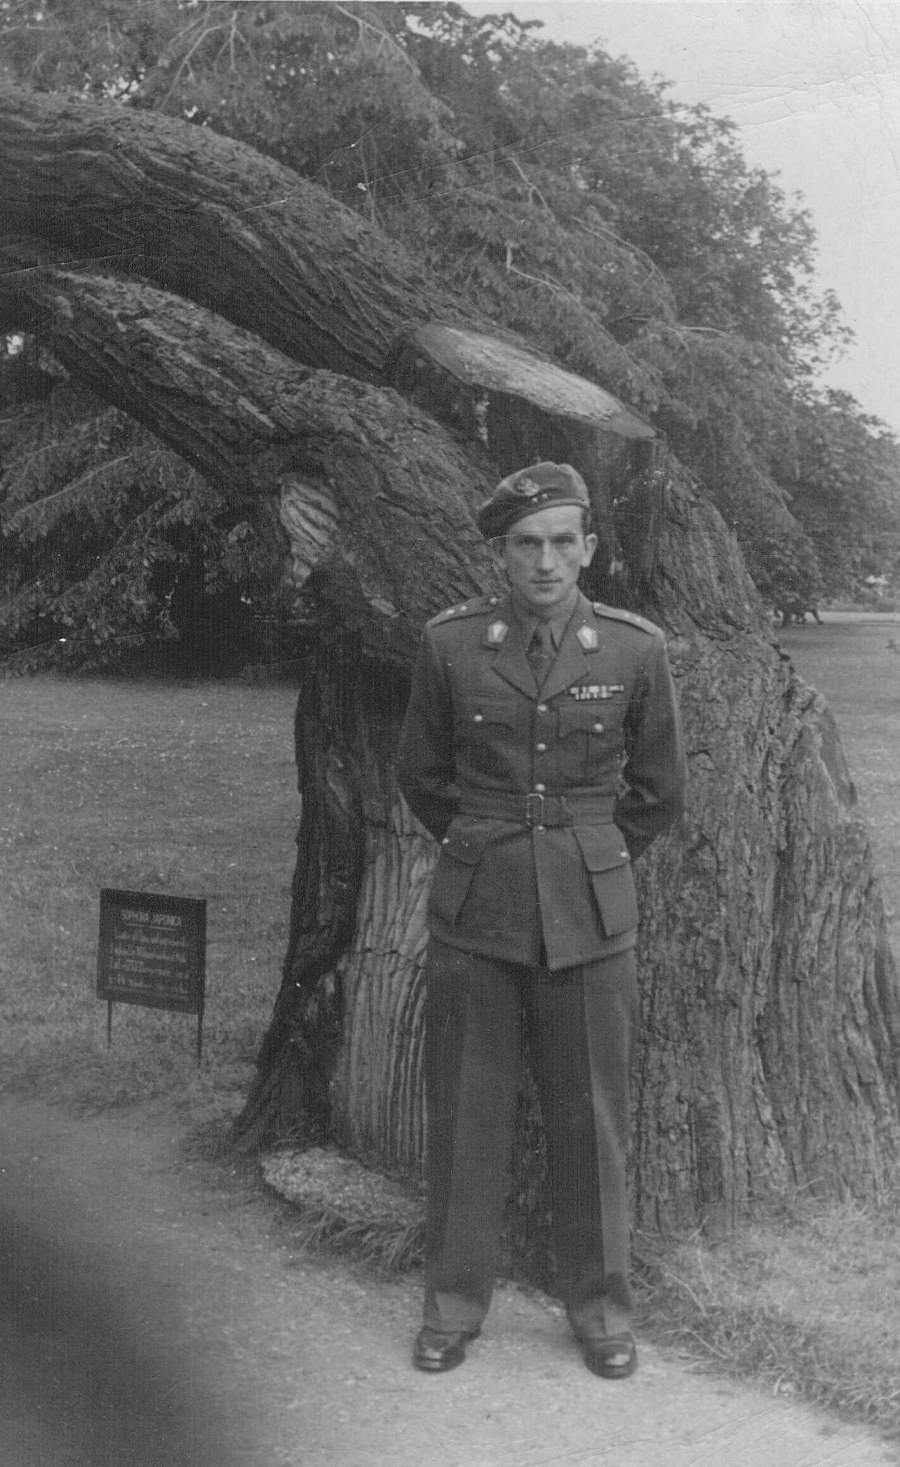 Image of Lieutenant Commander Gustaw Górecki ps. Gustaw, Commander 2<sup>nd</sup> Company, I Battalion  In London After The War July 31, 1947